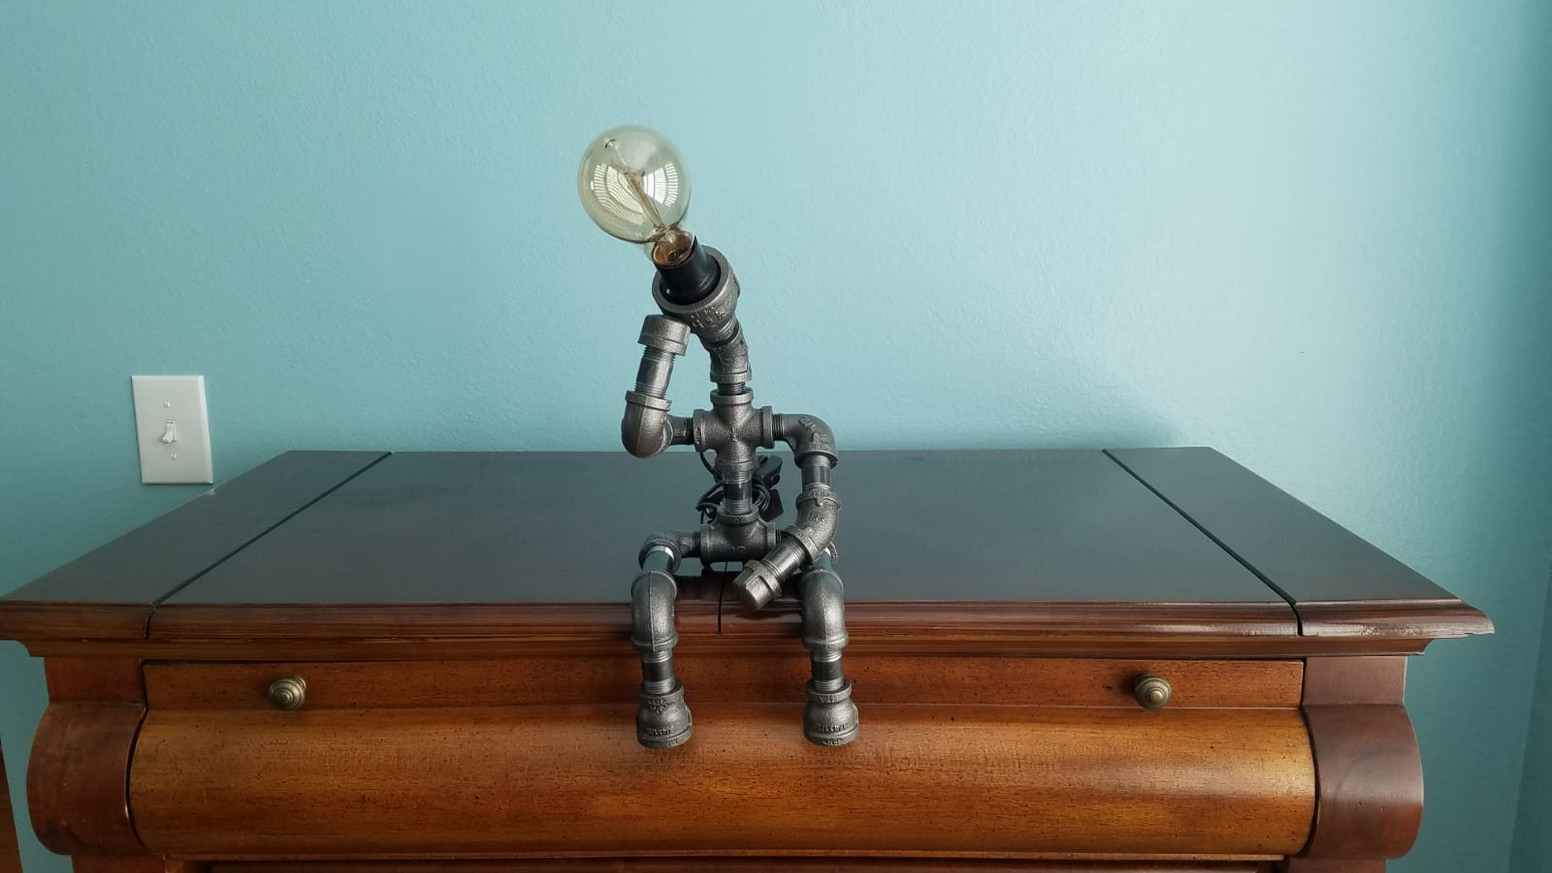 The Thinker recreated as a steampunk lamp.